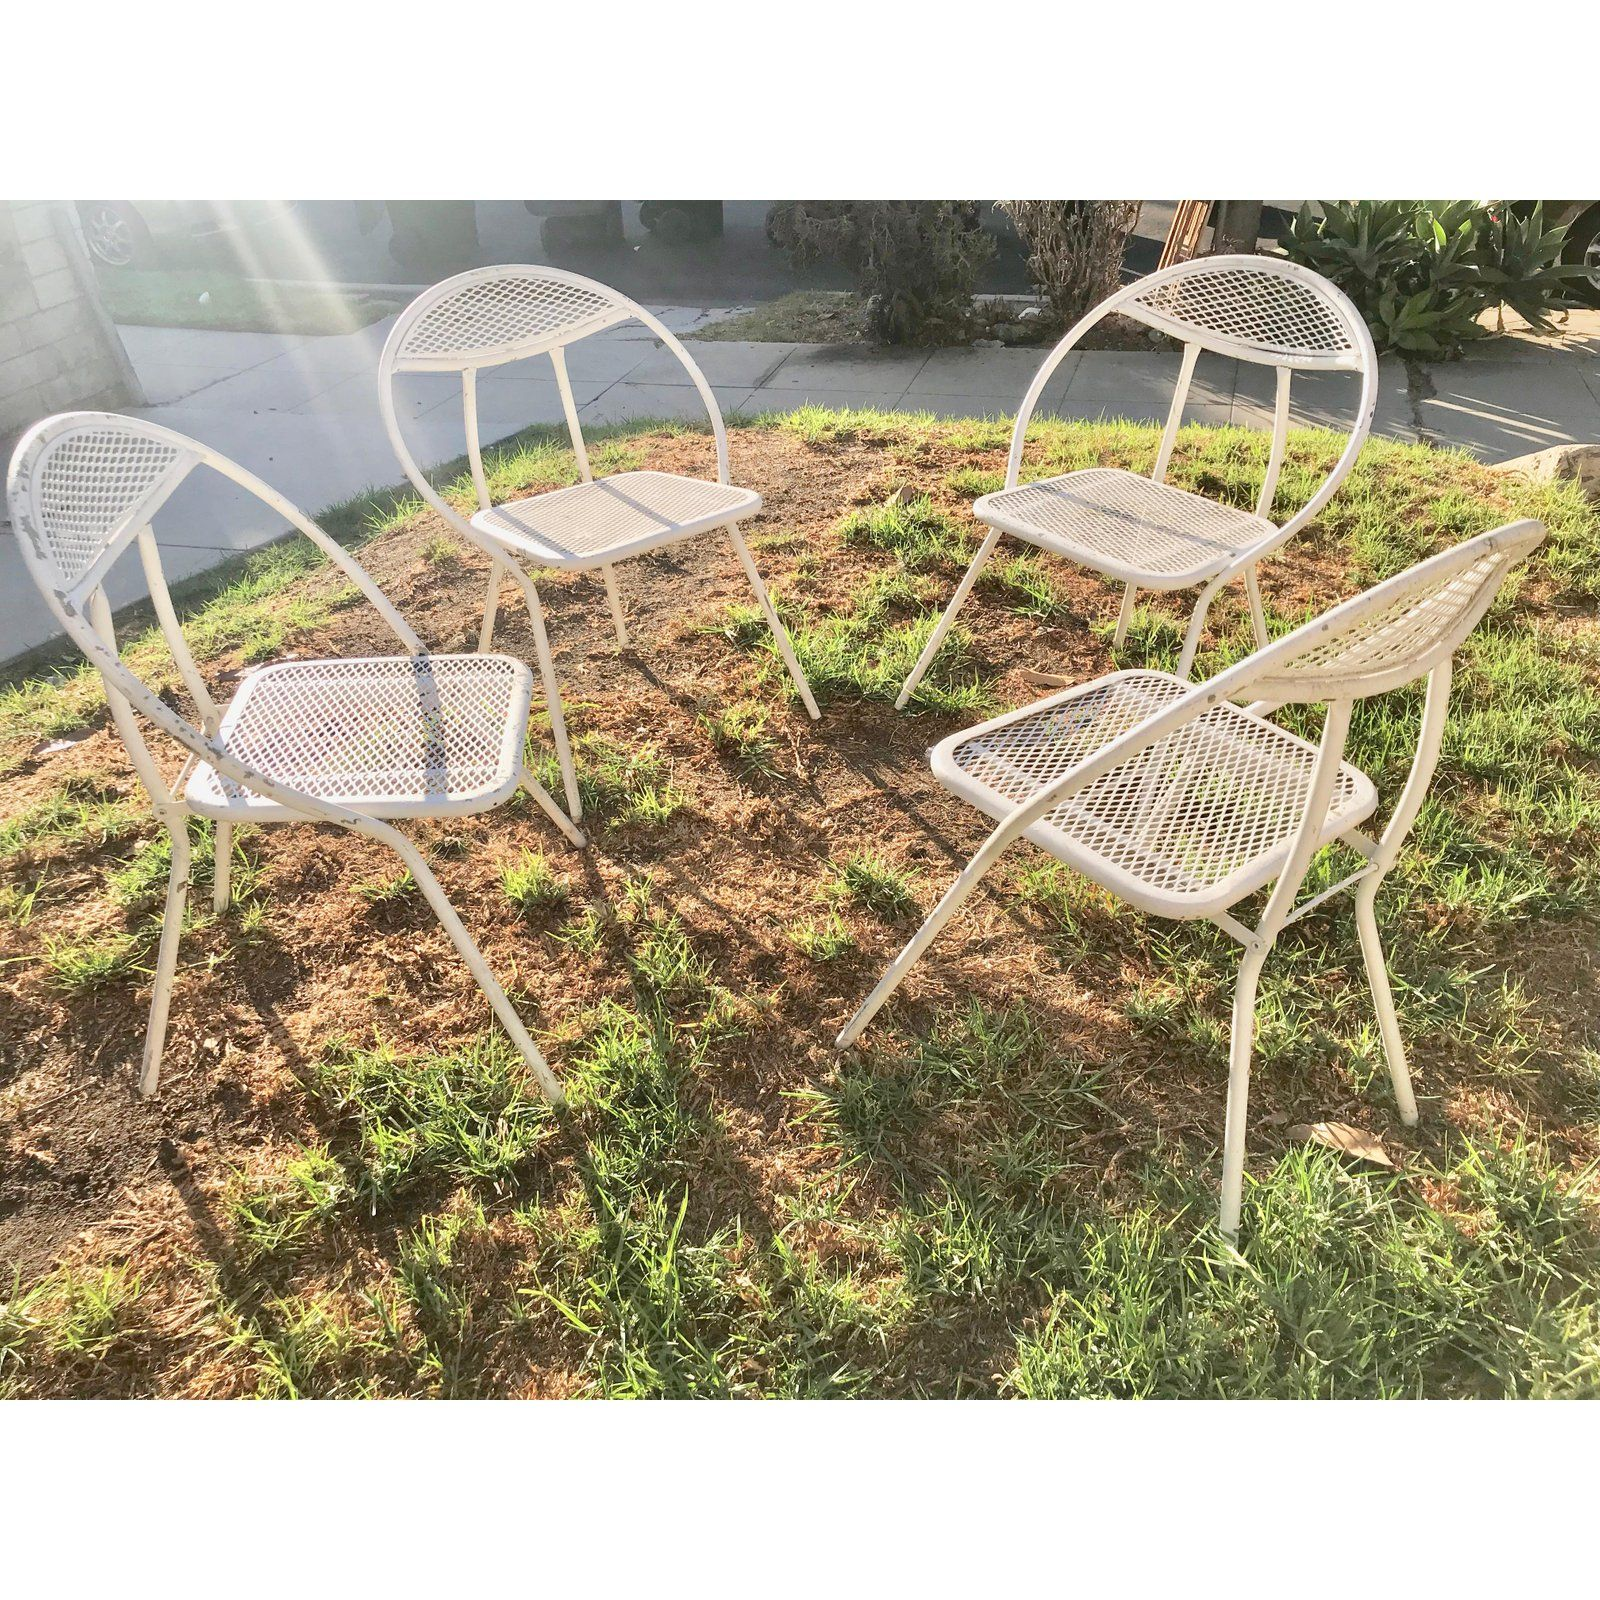 1960s Mid Century Modern Salterini Patio Dining Set 5 Pieces